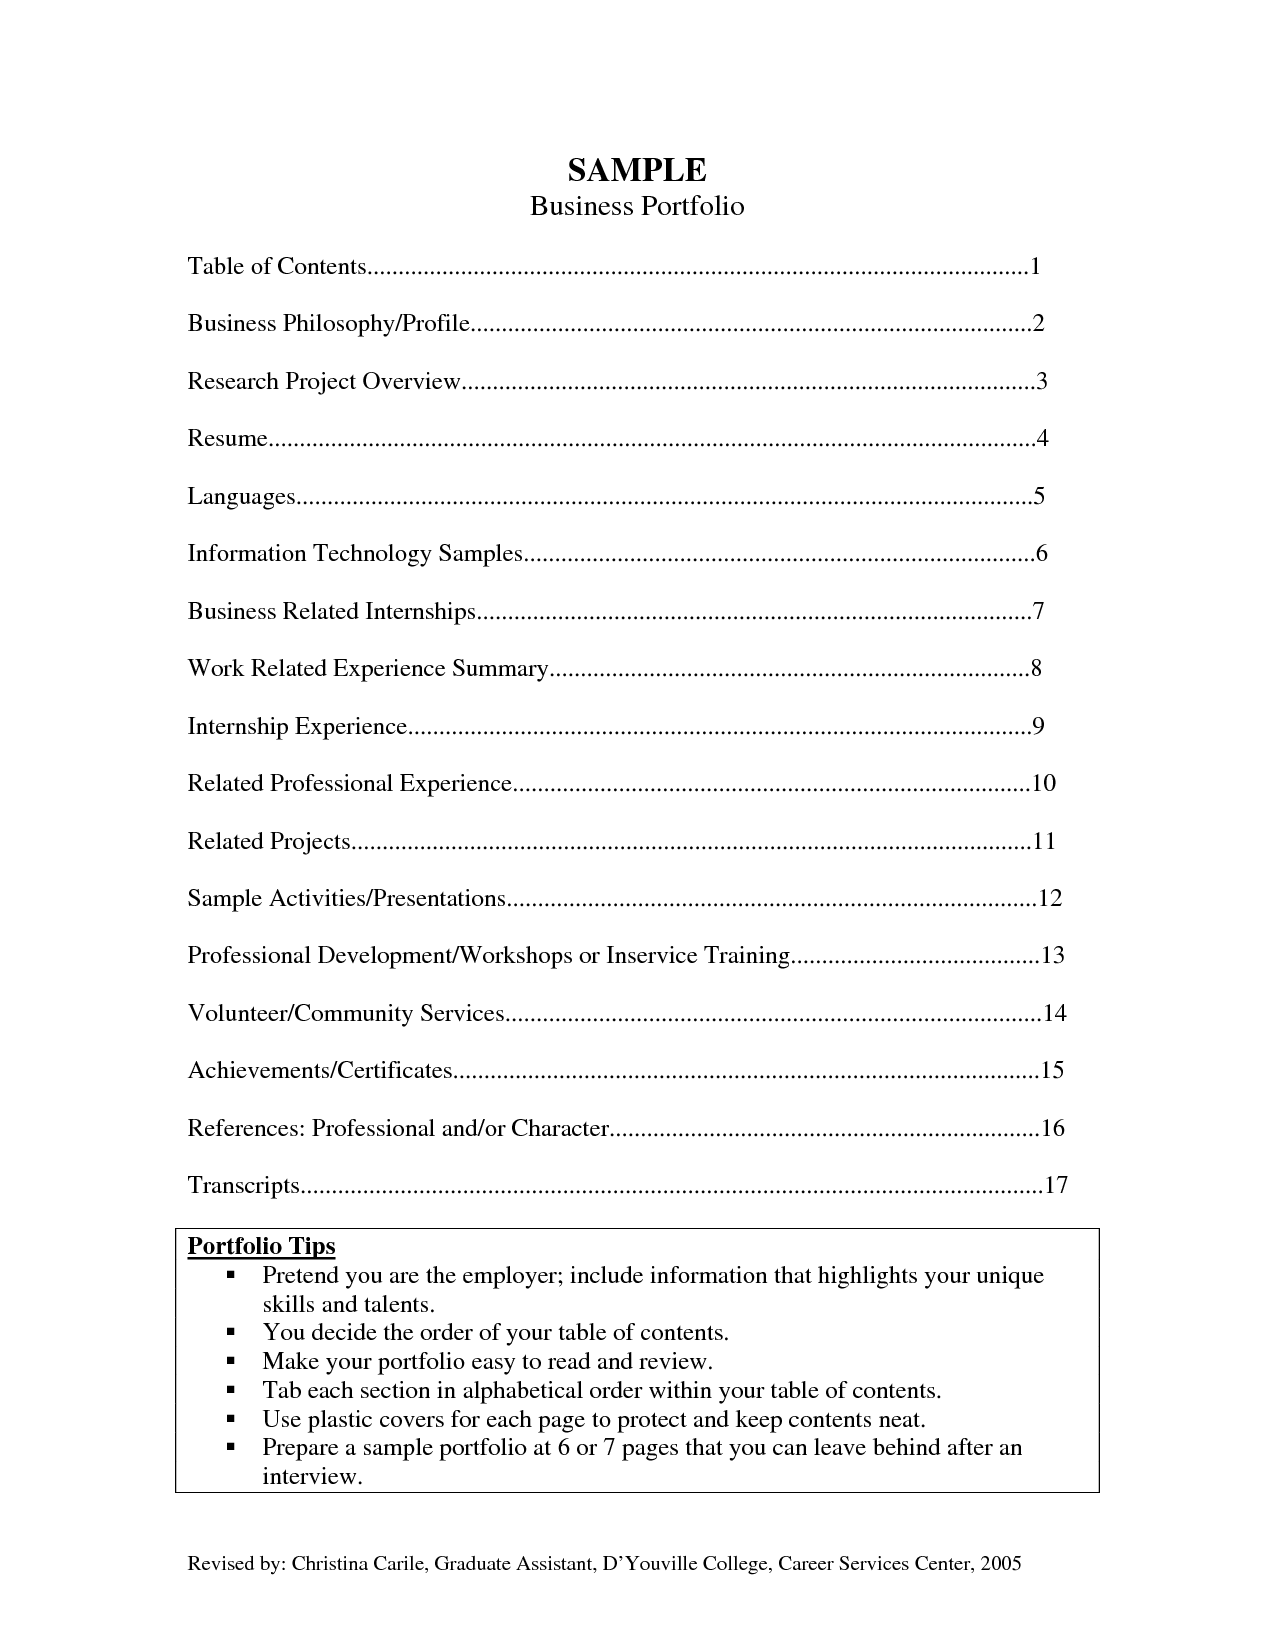 career portfolio examples creating career portfolios career portfolio examples sample business career portfolio sample